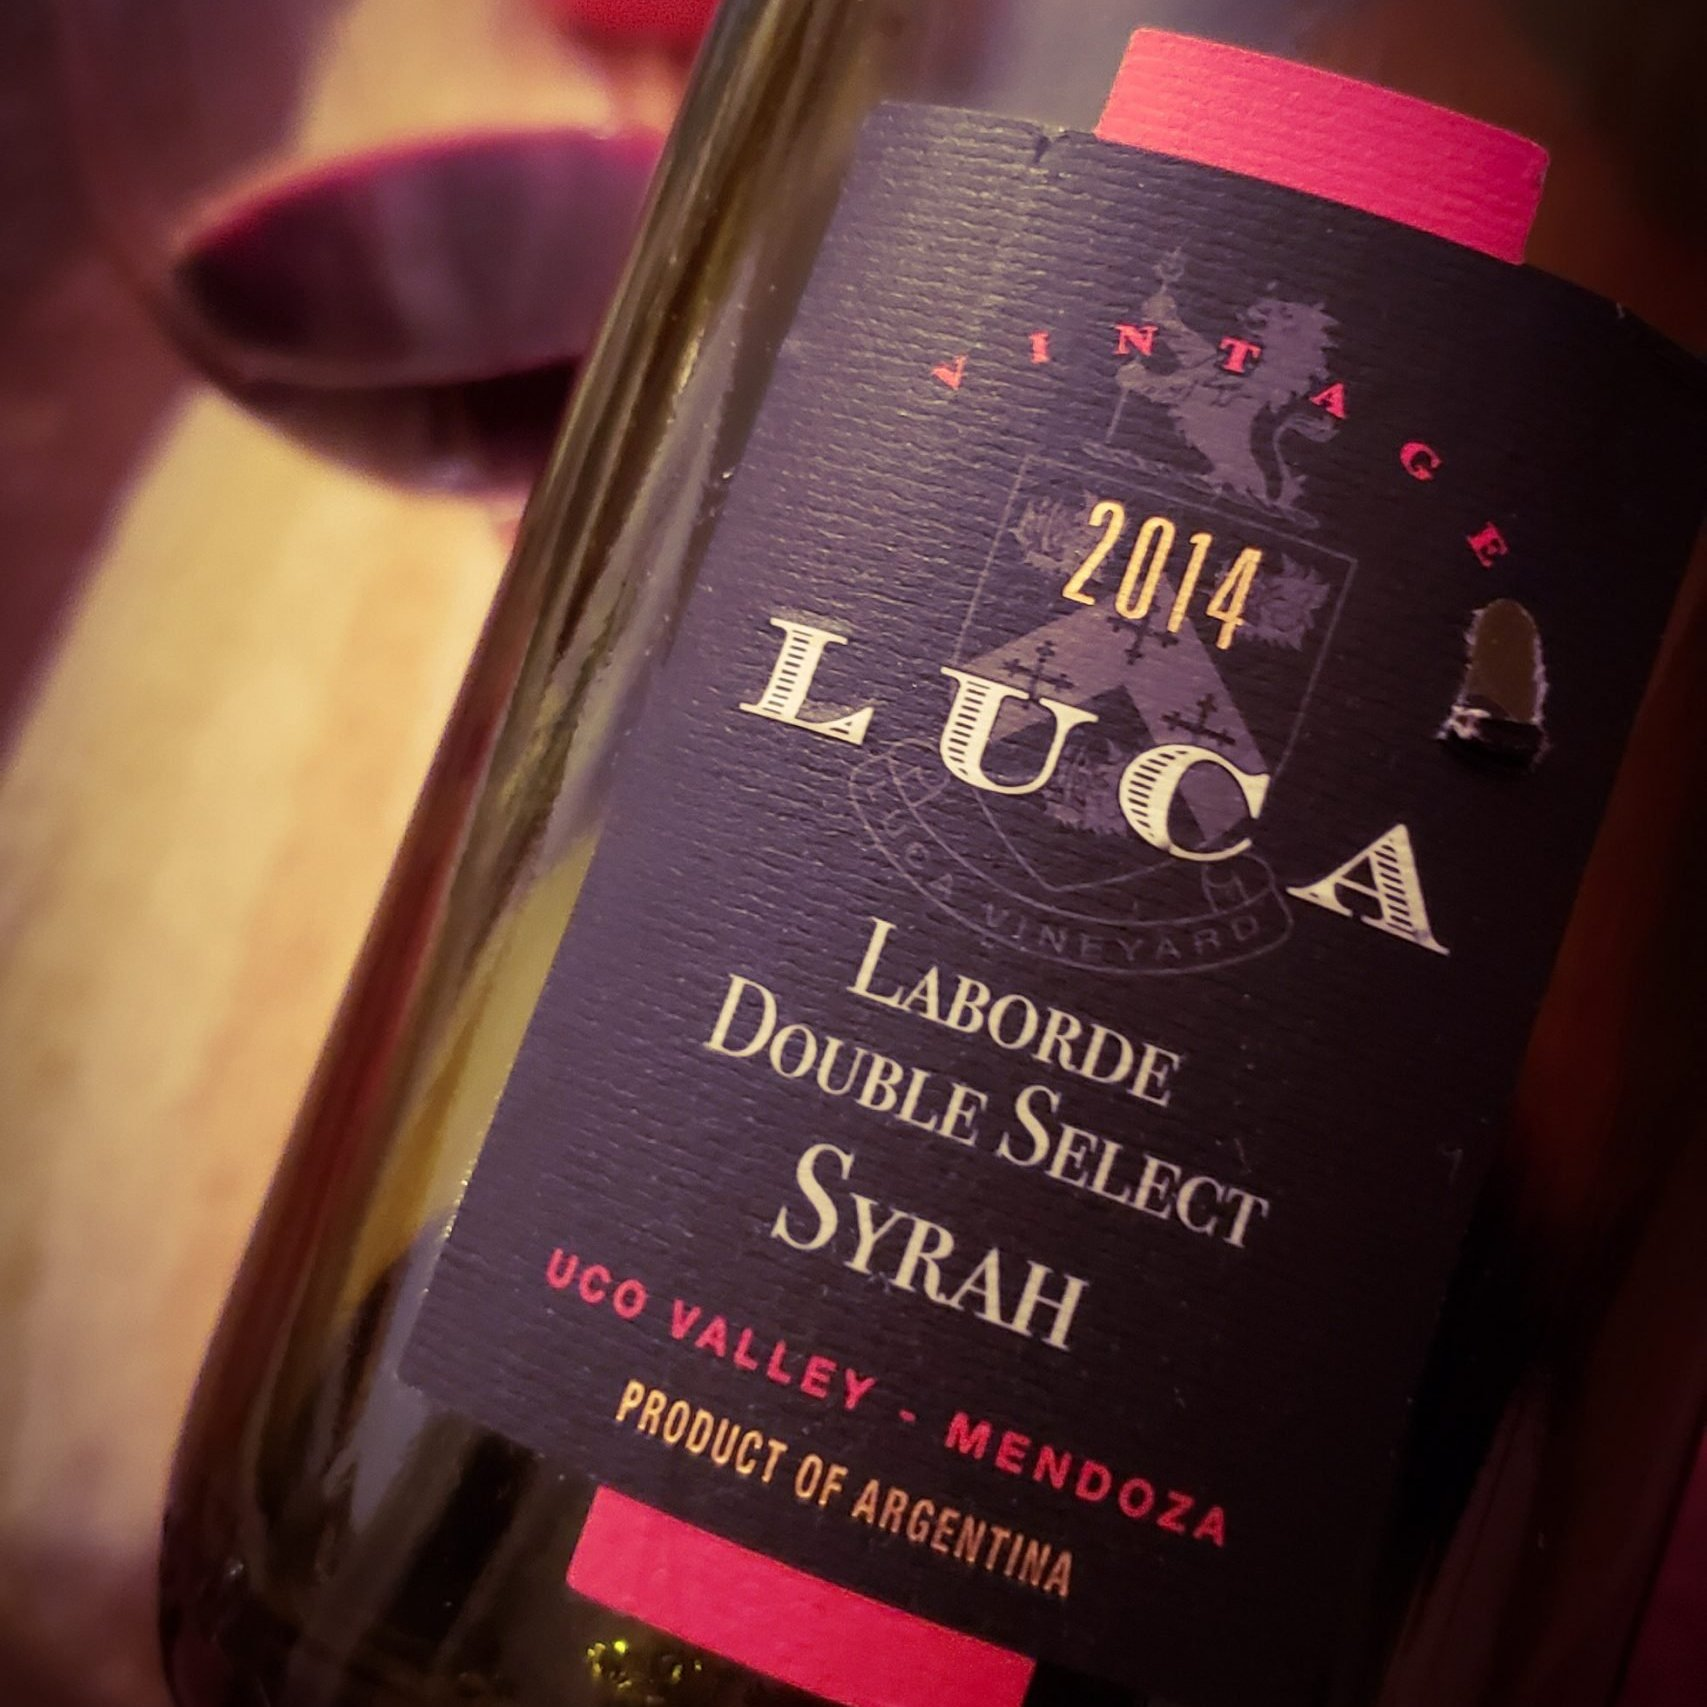 100 días - Luca Laborde Double Select Syrah 2014